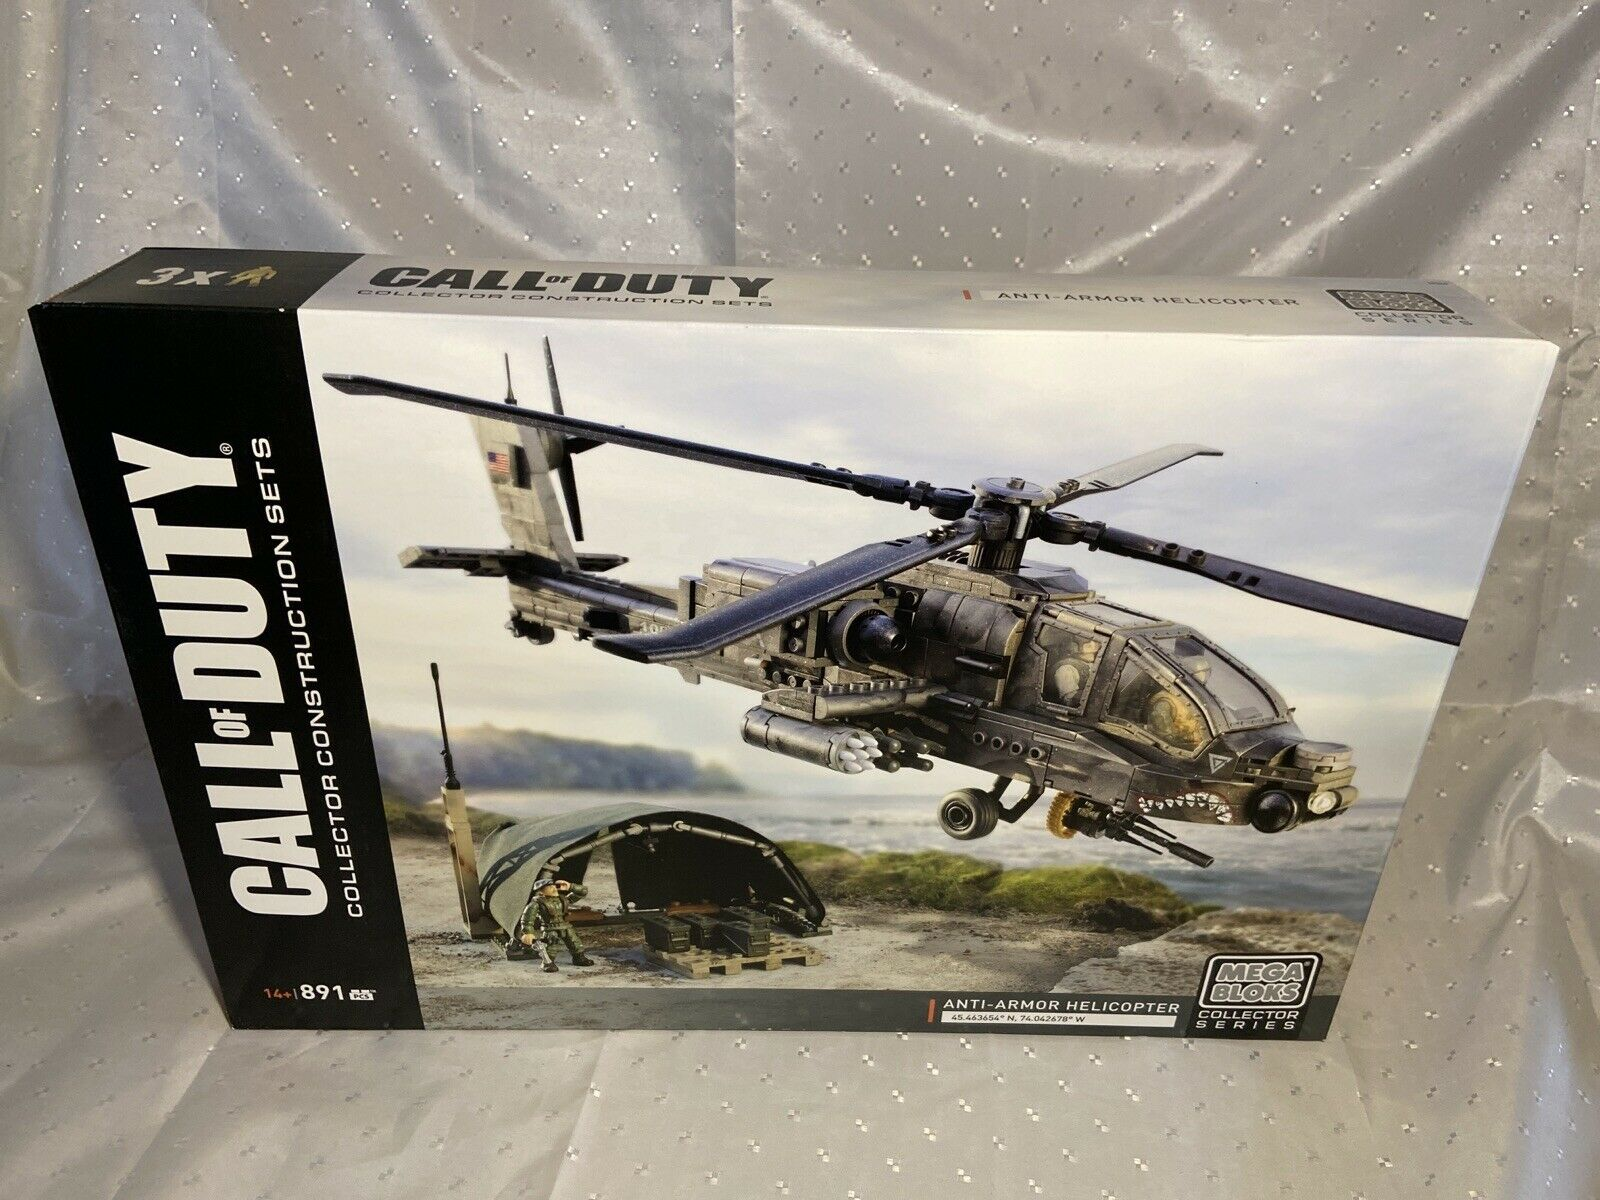 Mega Bloks Dpb60 Call Of Duty Anti Armor Helicopter Soldiers Collector For Sale Online Ebay